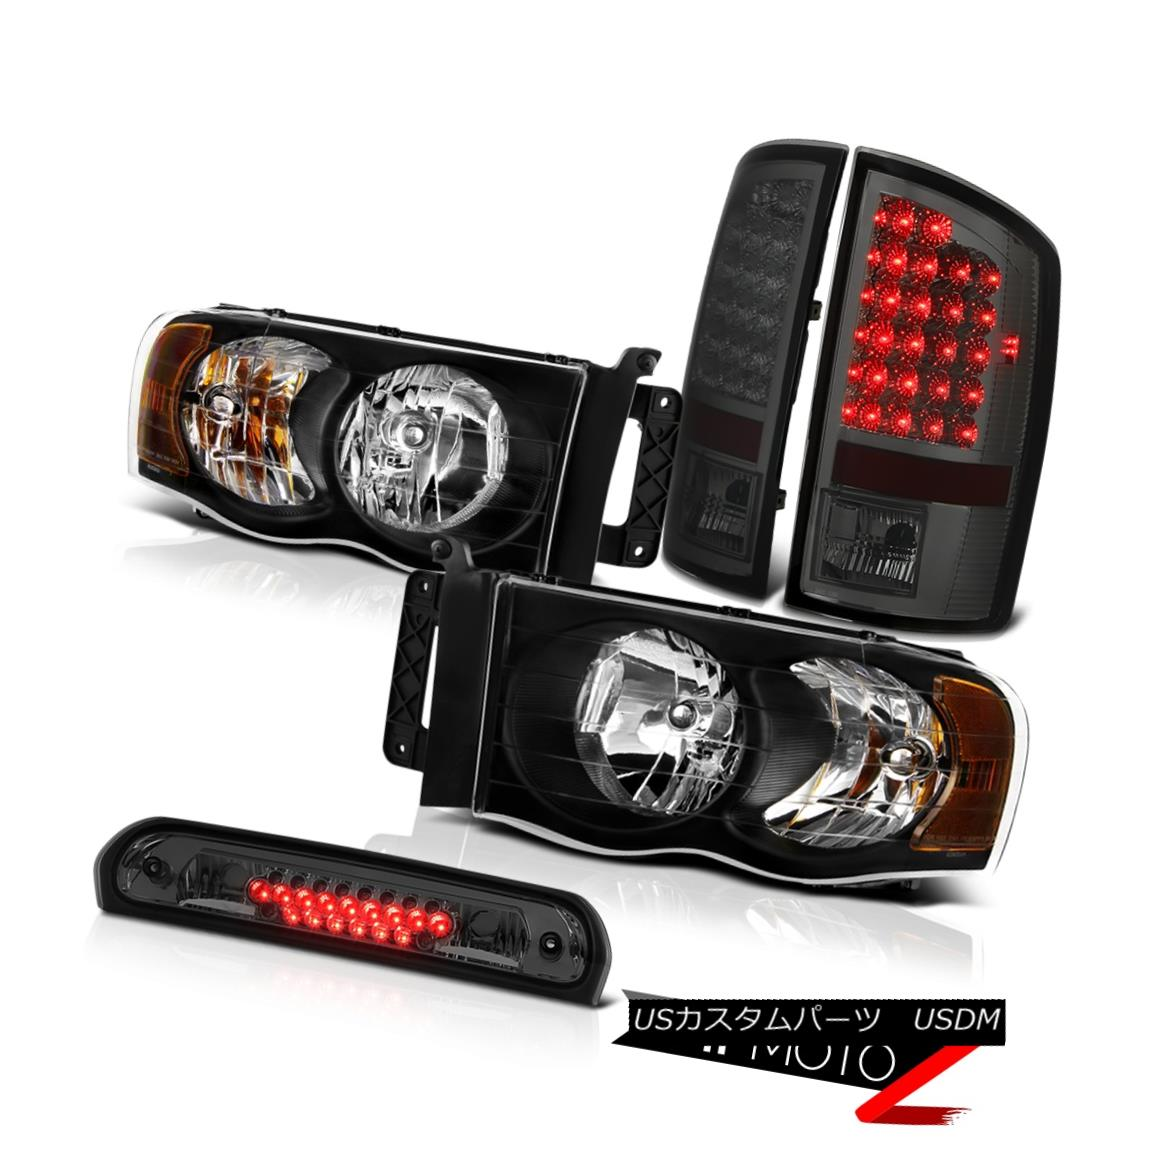 テールライト Inky Black Headlights Smoke Brake Tail Lights Third Cargo LED 02-05 Dodge Ram WS Inky BlackヘッドライトスモークブレーキテールライトThird Cargo LED 02-05 Dodge Ram WS